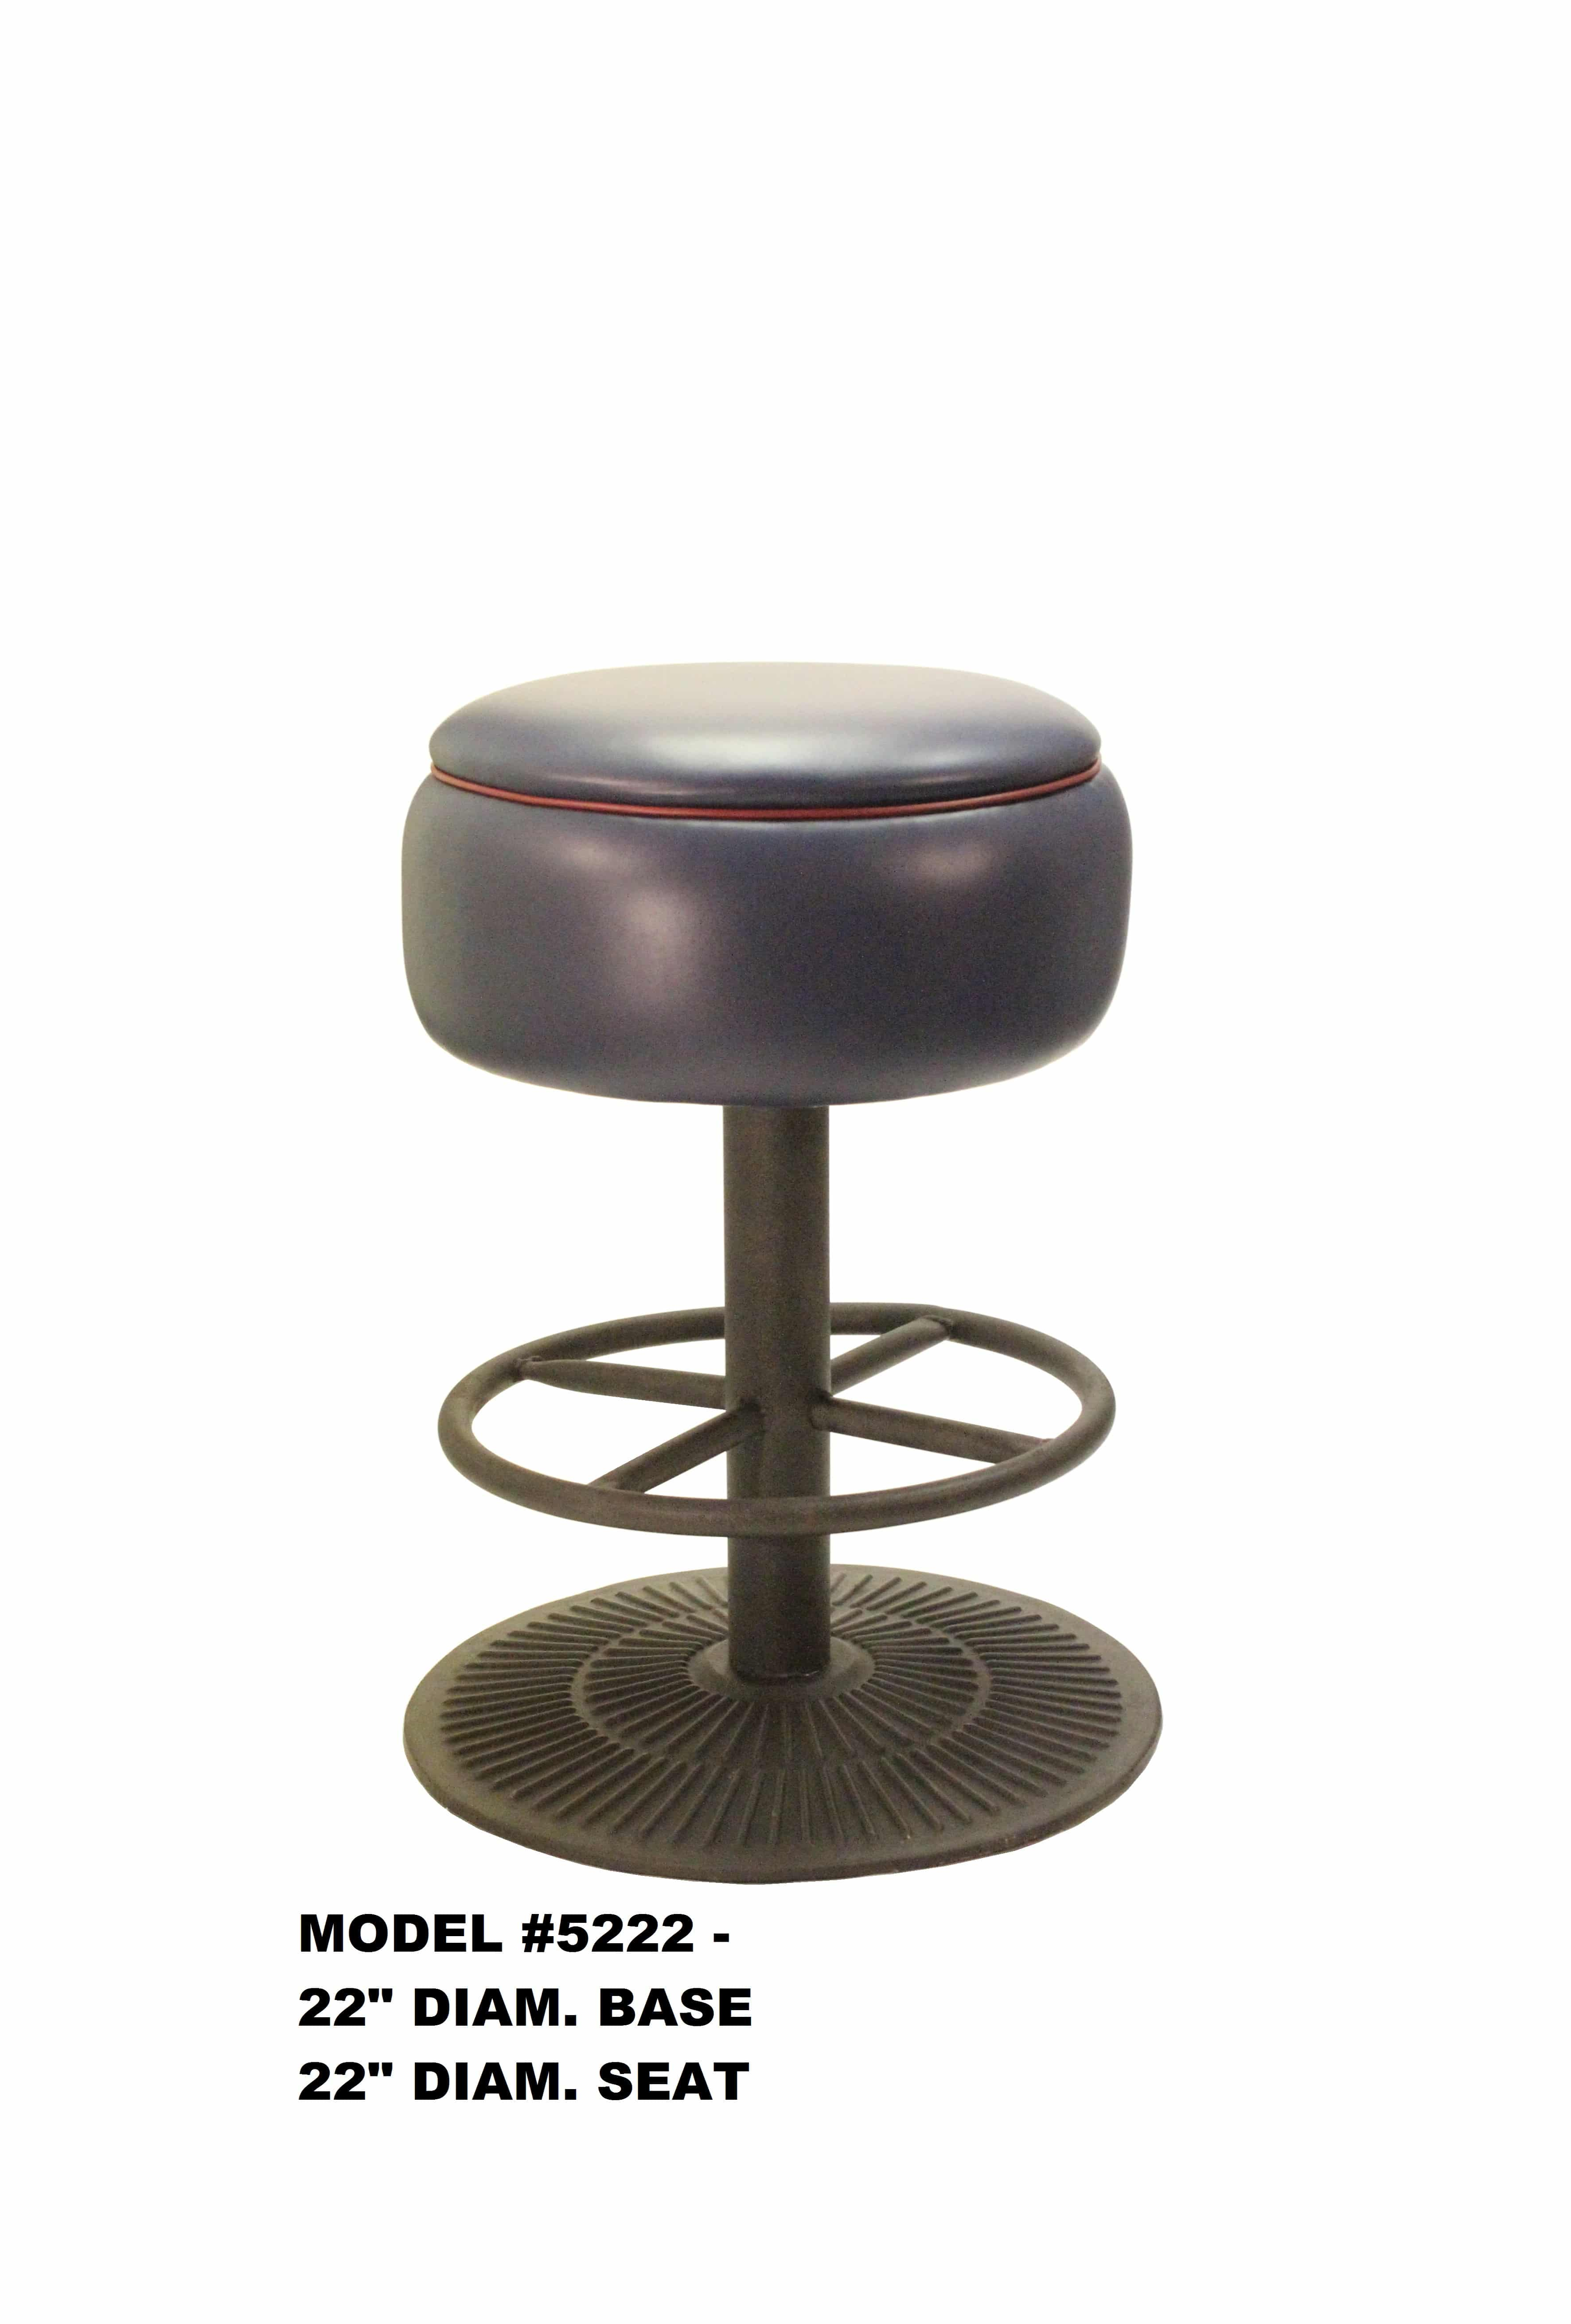 Picture of: Heavy Duty Round Seat Swivel Backless Metal Bar Stool Model 5222 Restaurant Chairs By M Deitz And Sons Inc